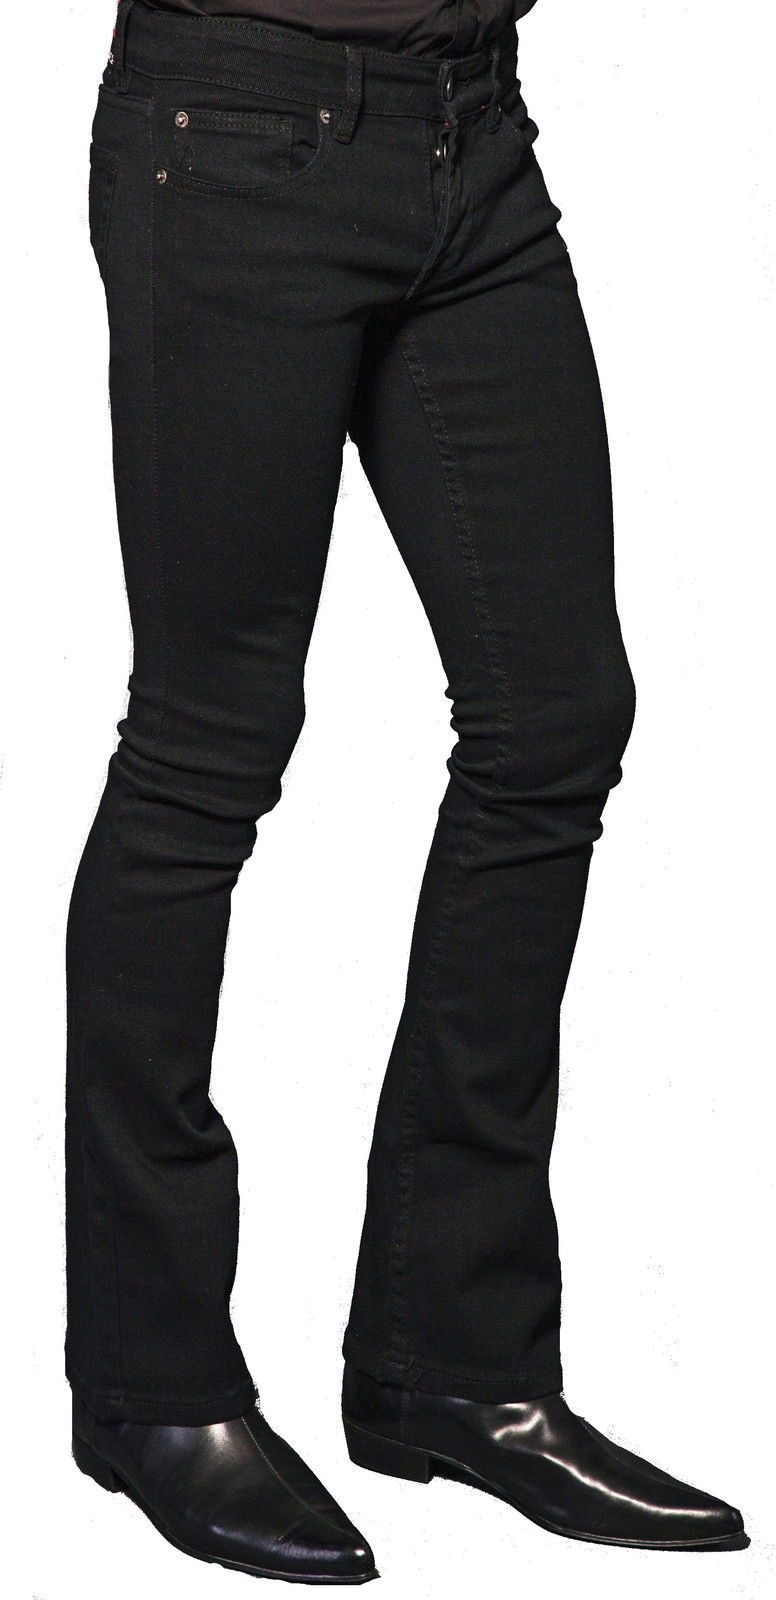 ed6b0f13d3d6 Lip Service Rocker Jeans Mens Black Bootcut Stretch Jeans